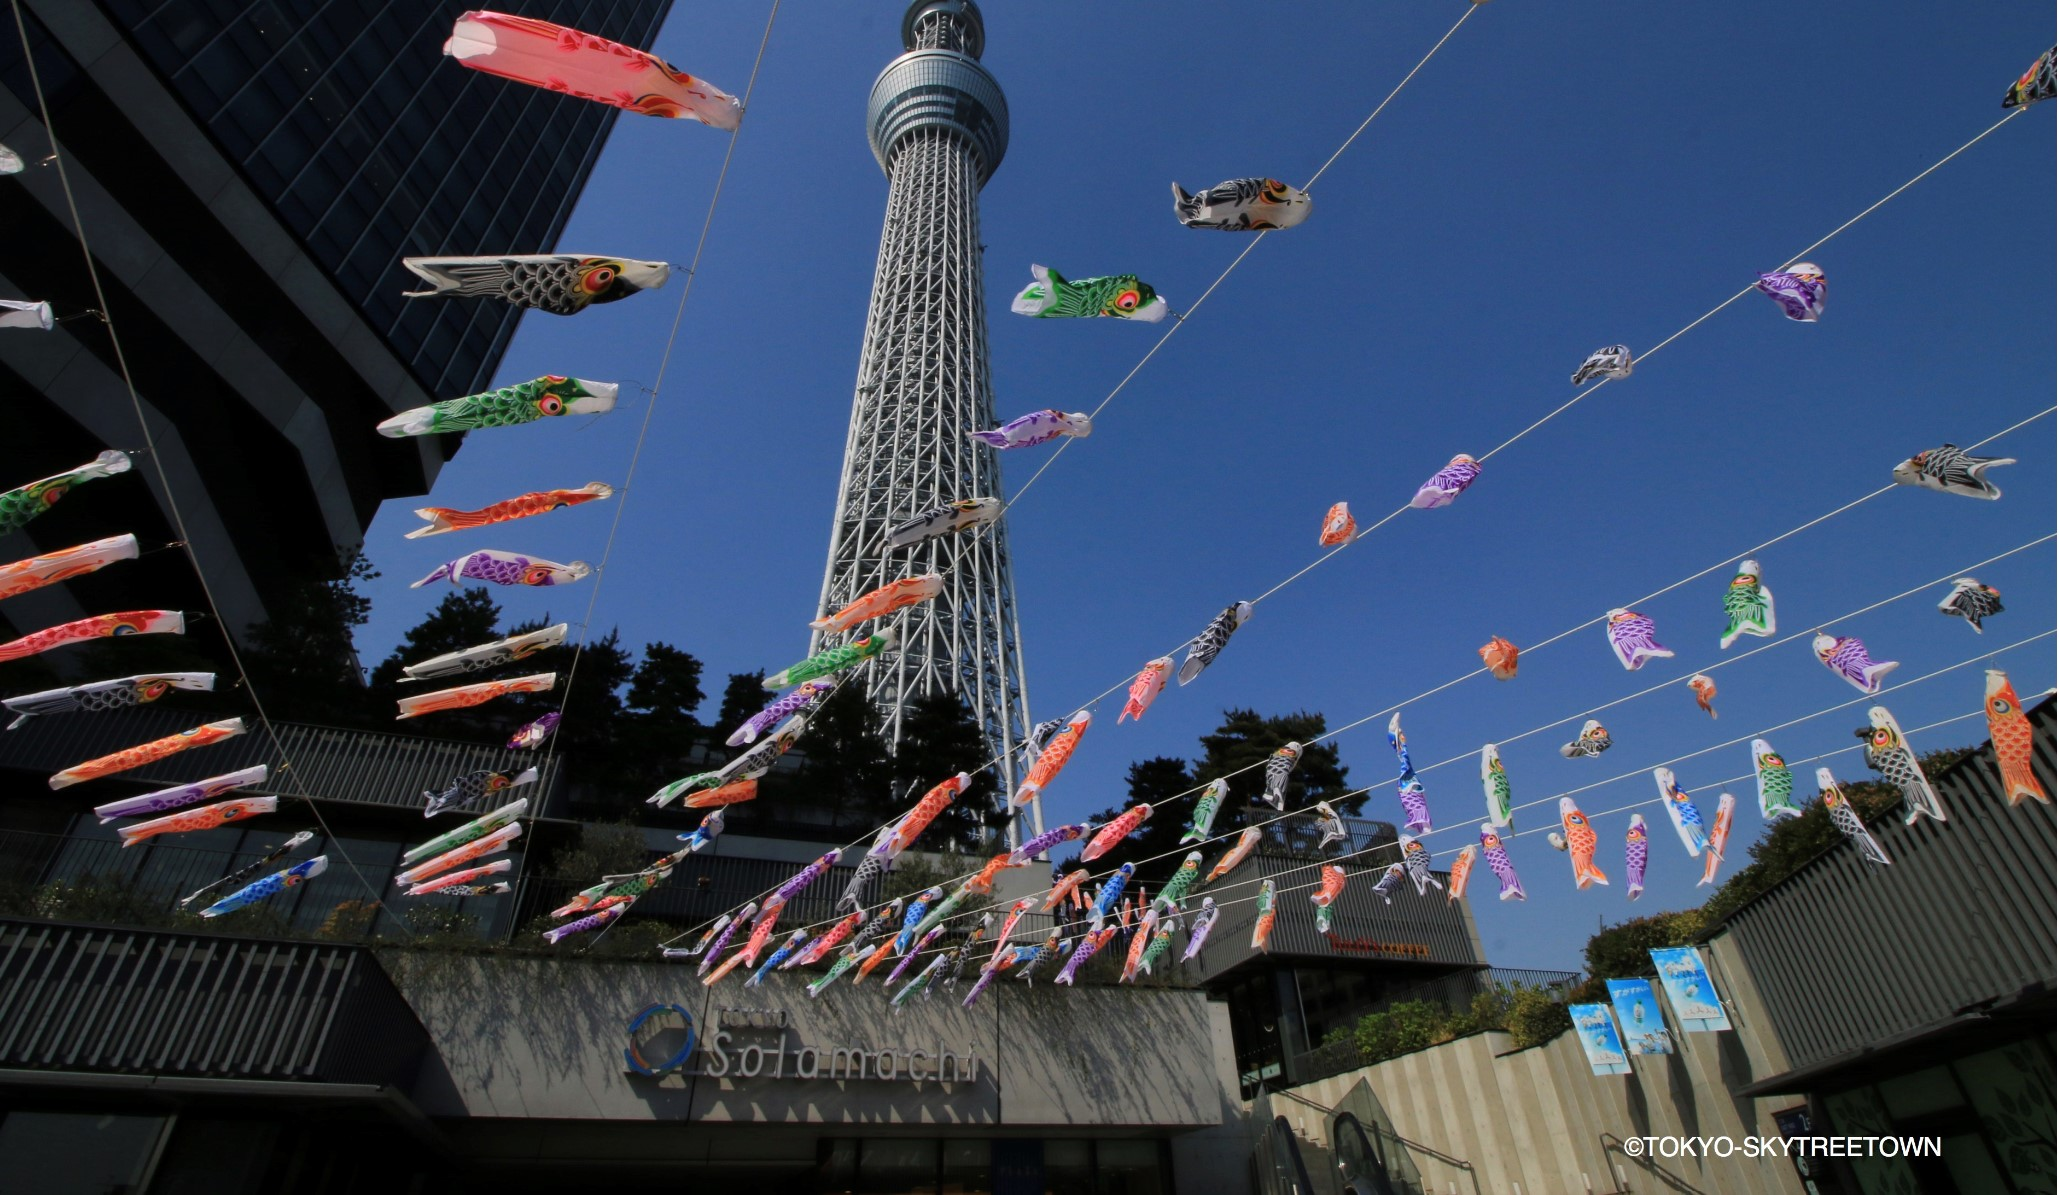 Carp Streamers At TOKYO SKYTREE TOWN